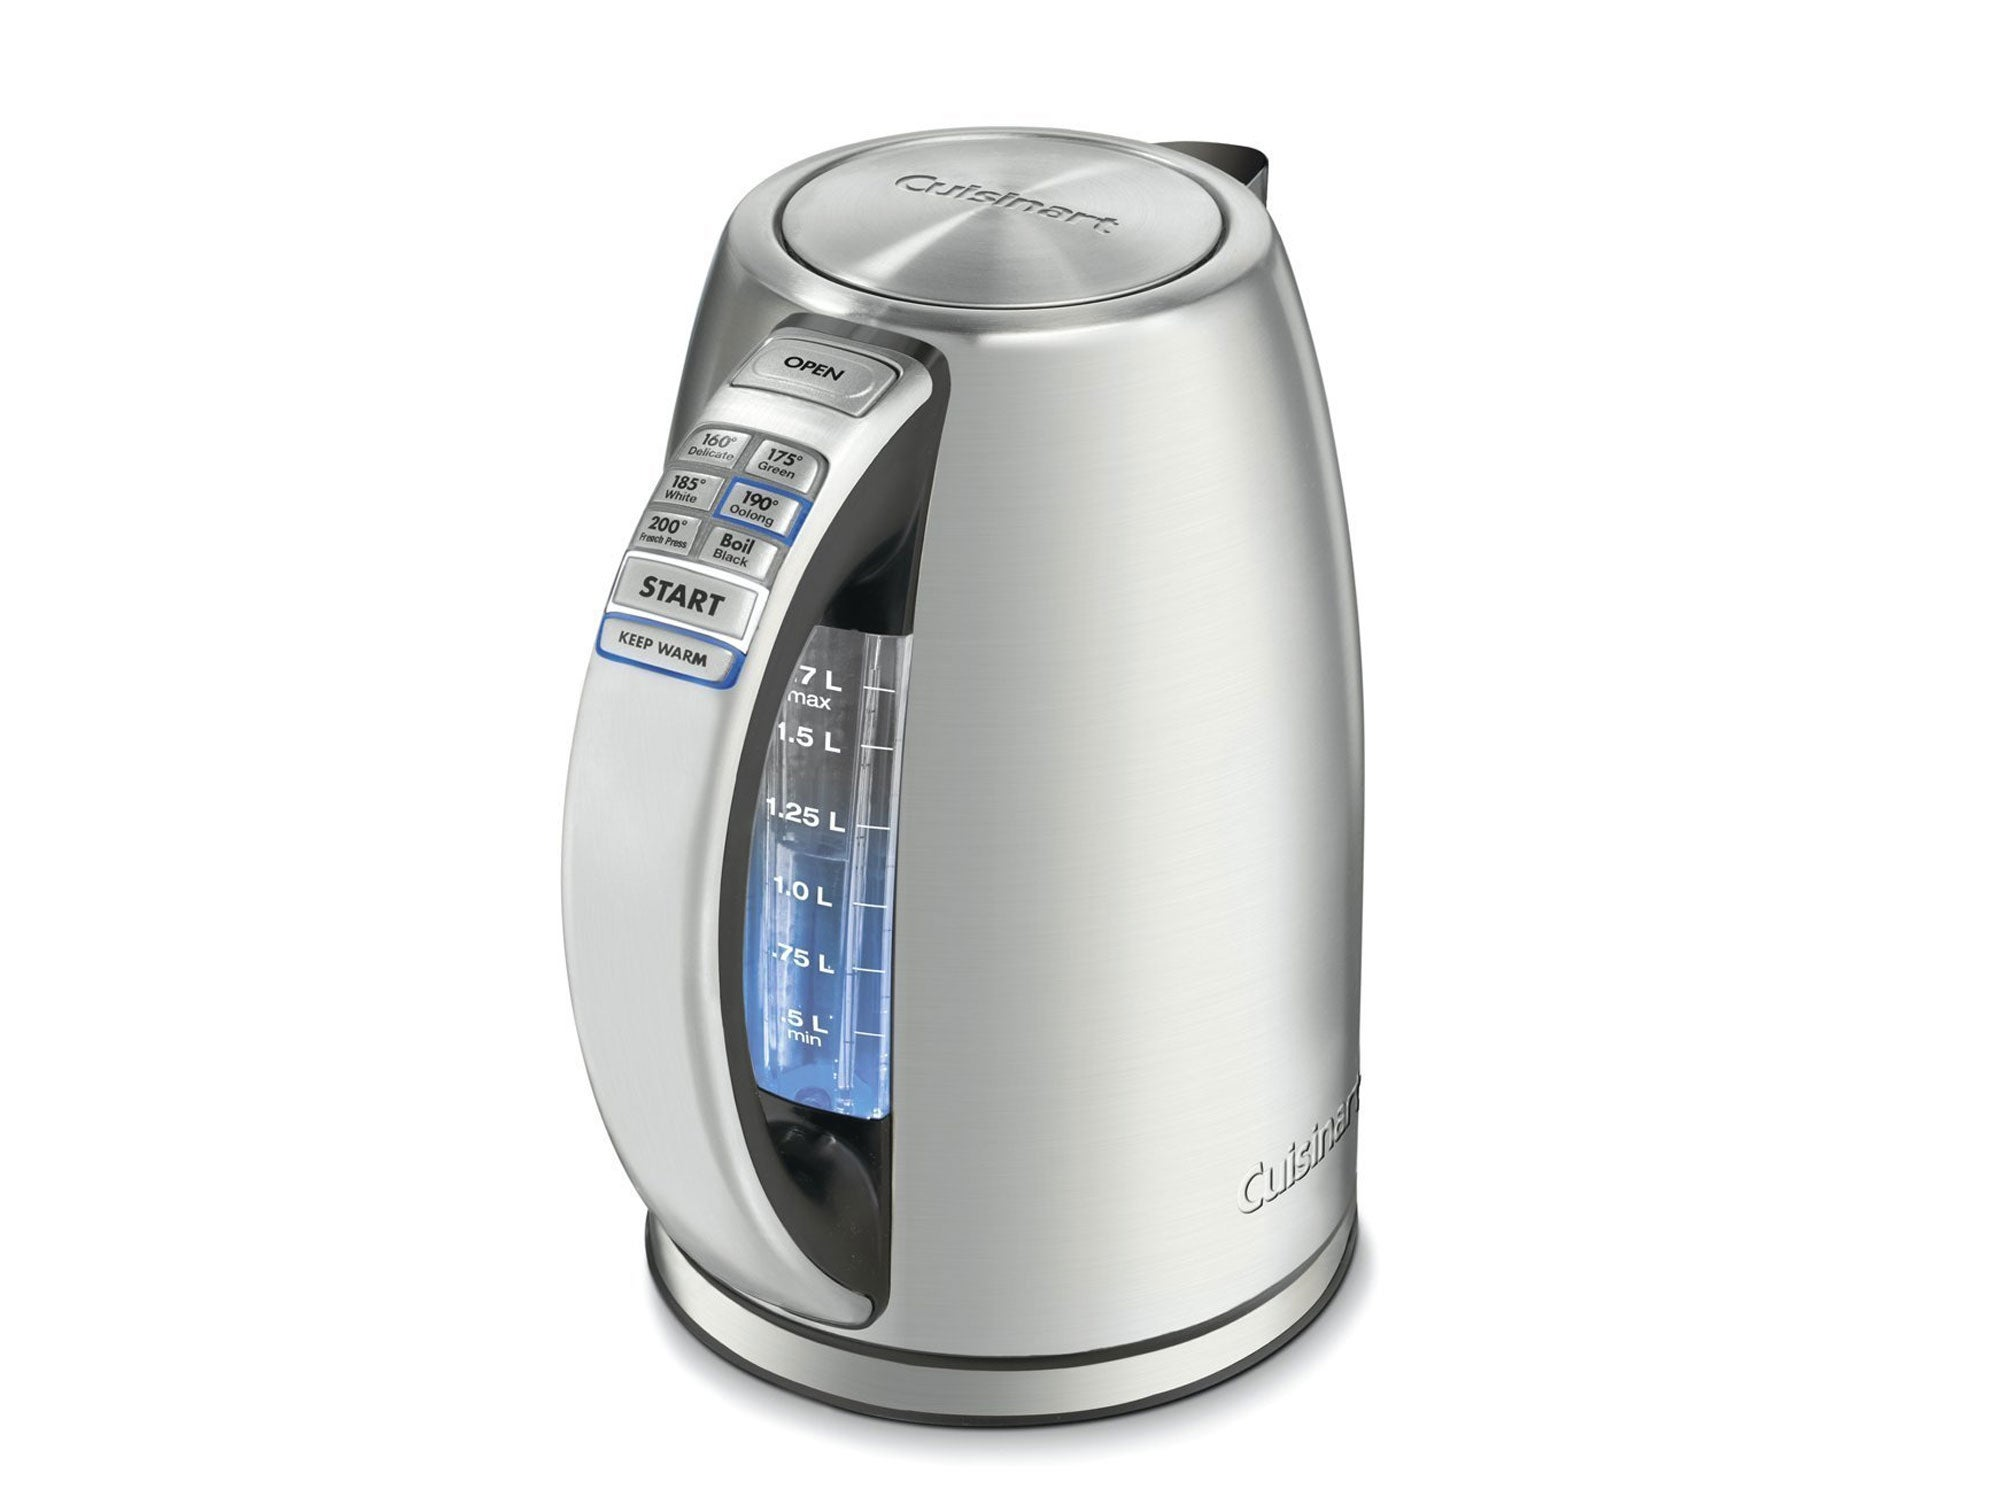 Cuisinart PerfecTemp 1.7-Liter Stainless Steel Cordless Electric kettle, 1.7 L, Silver